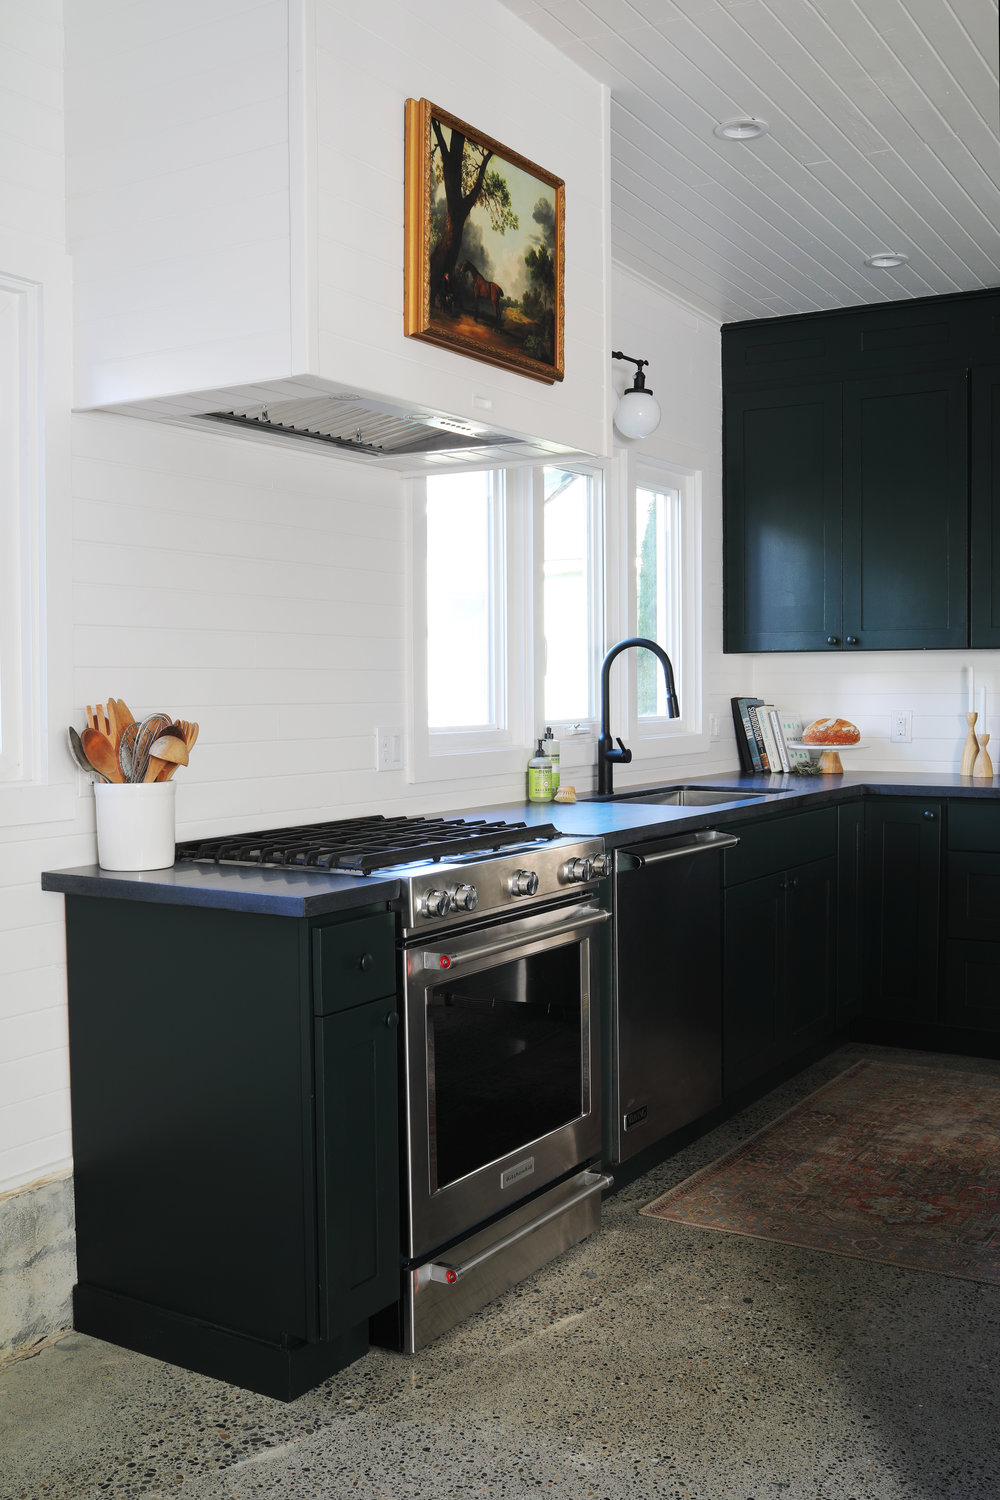 The Grit and Polish - Tacoma Kitchen Reveal Stove + Sink + Windows.jpg